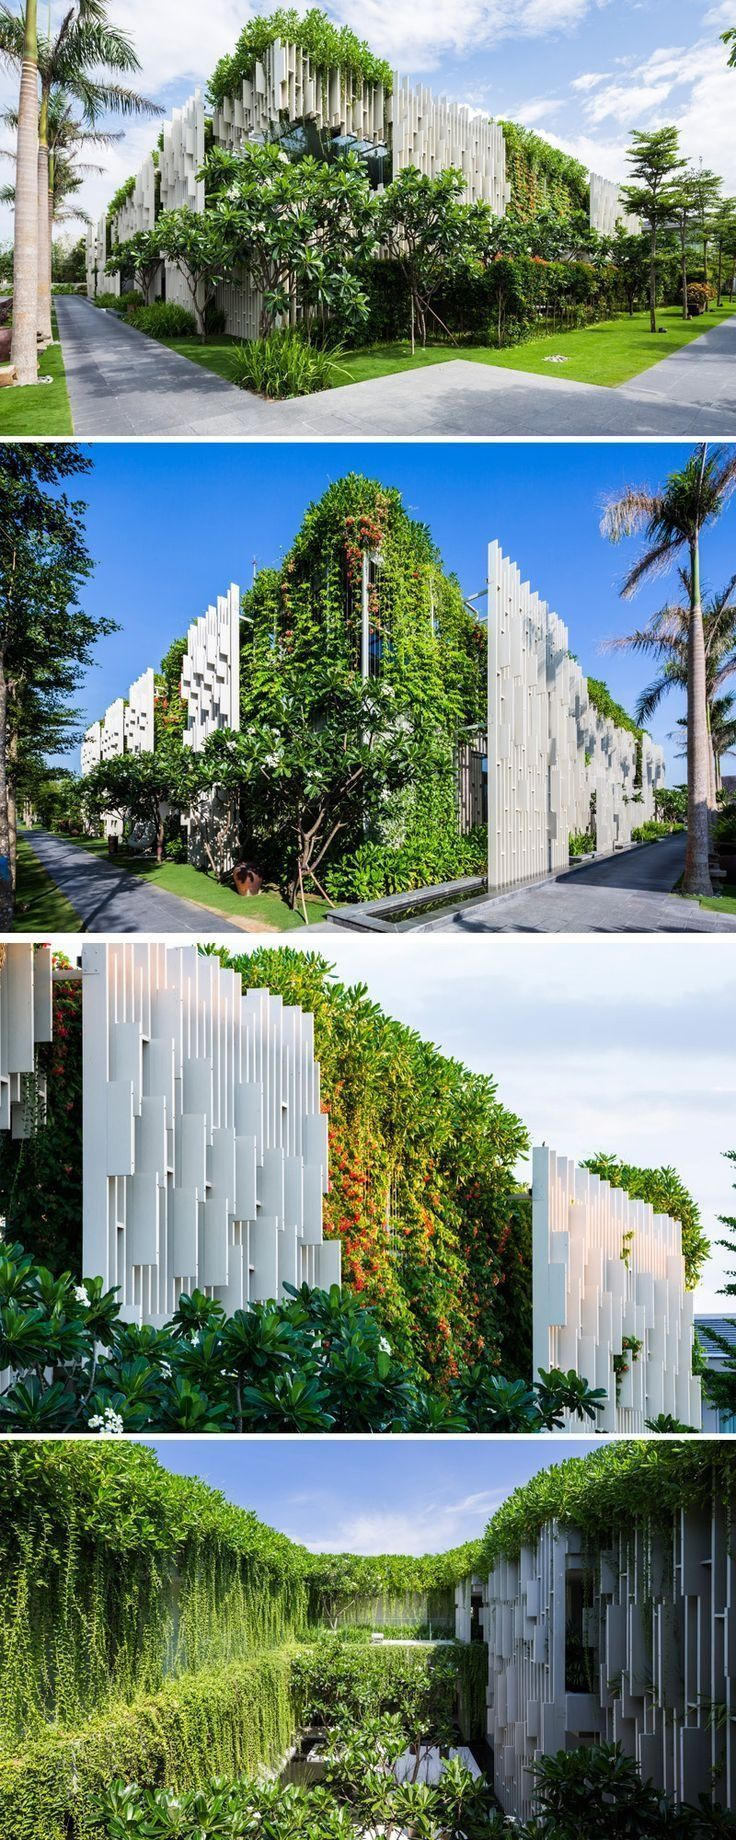 To beautify your workplace or house, vertical gardening is filed with the most novel and outstandingly modern ideas. Those eye-catching, green living walls with colorful flowers impart stylish and mind-blowing chic to the place.    Design and construction of a vertical garden  In nature, so-called vertical gardens are often created on their own when wild plants settle in crevices and walls. Either the Wind or wild birds transfer see... #beautify #filed #Gardening #House #Vertical #workplace